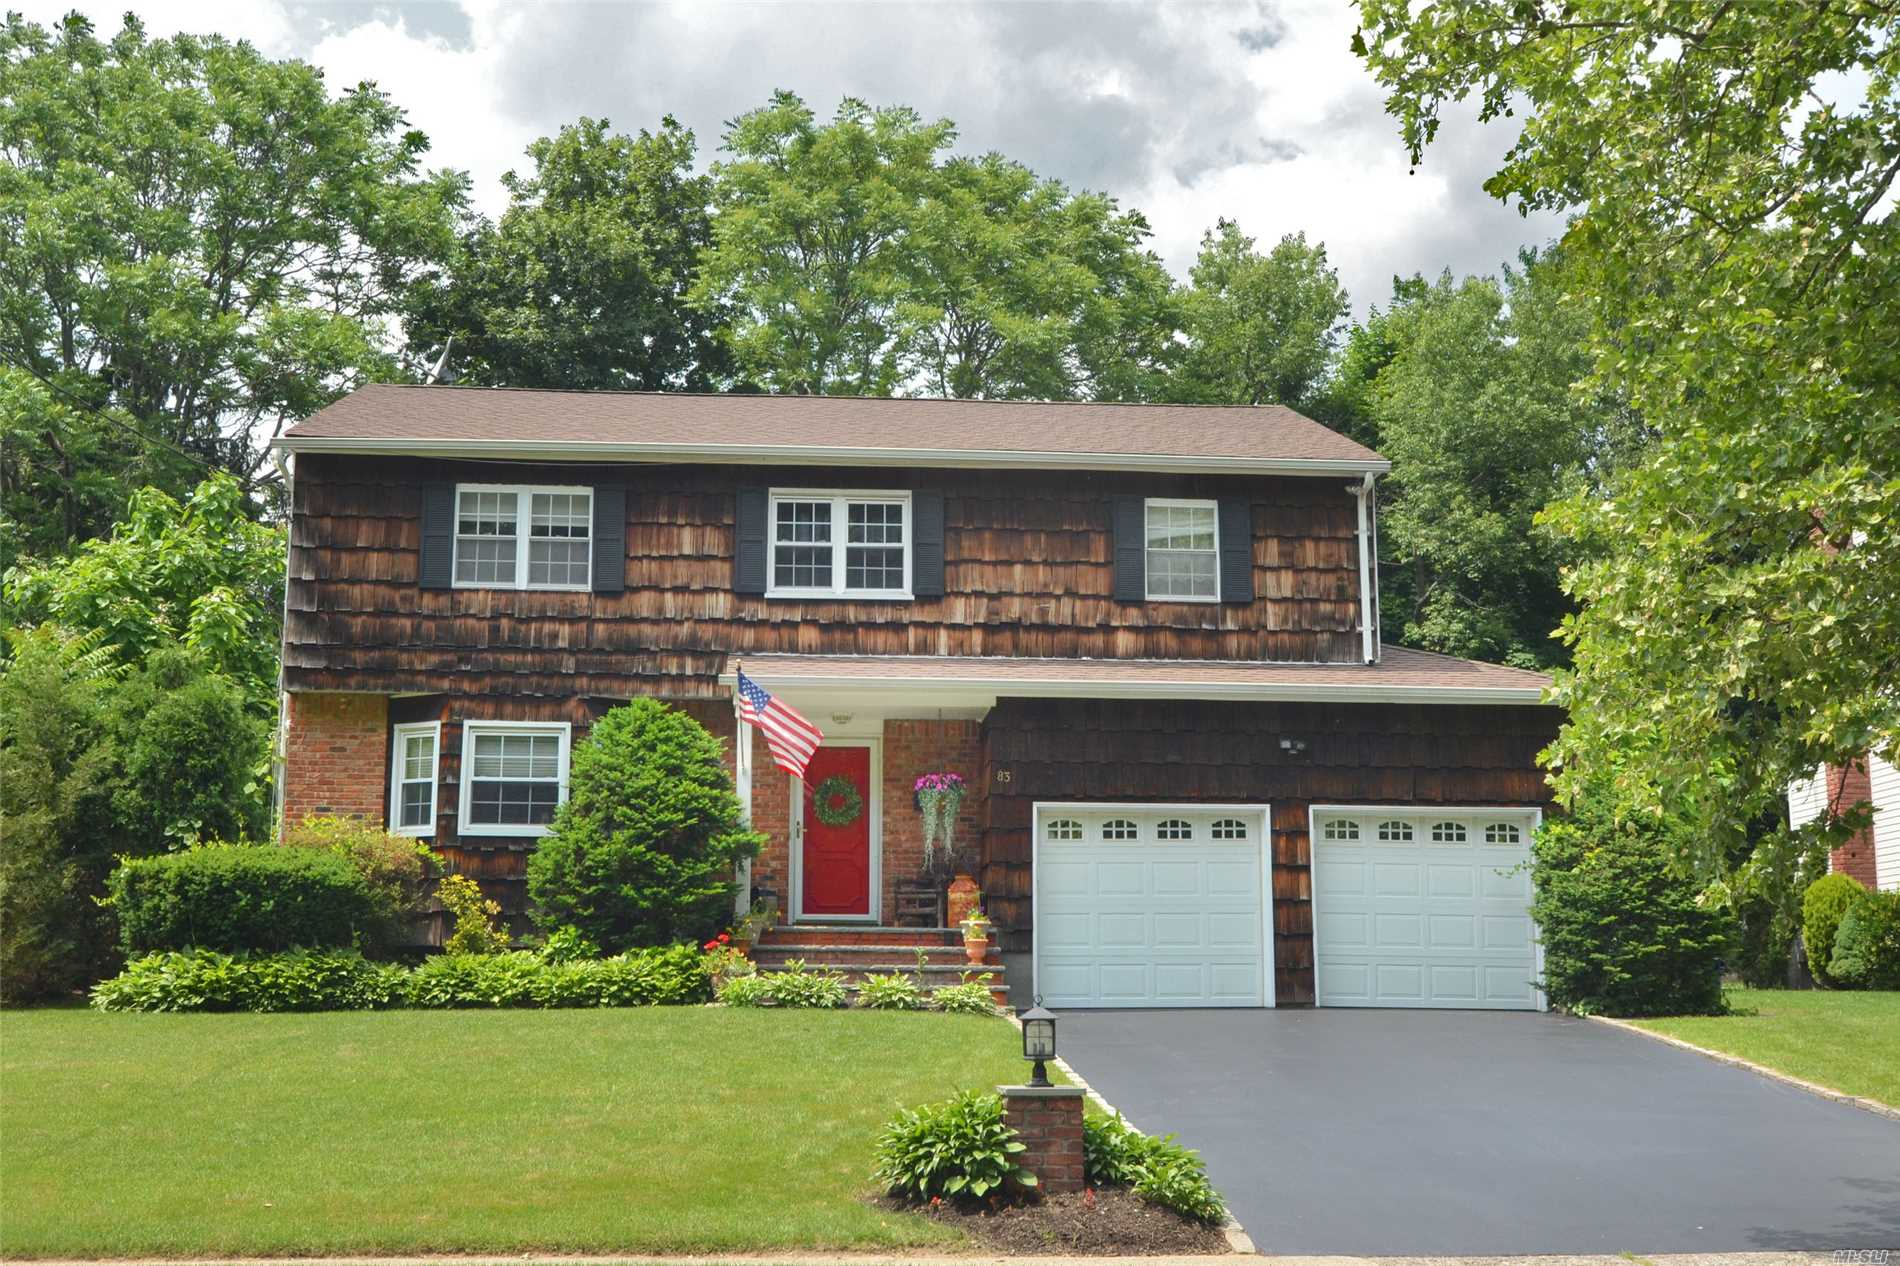 Mint Condition Colonial W/5 Bdrms, 3.5 Renovated Baths. Spectacular Mbr On First Floor W/Vaulted Ceiling, Skylights, Brick Fireplace, Huge Wi Closet, And Luxury Master Bath. First Class Eik W/Granite Counters Opens To Fam Rm W/Gas Fp. Formal Dr W/Sliders To Private Rear Yard W/Hot Tub, Brick Patio, And Garden Shed. Motivated Seller. Taxes Have Been Grieved. Close To Water And Close To Express Train On The Port Washington Line.